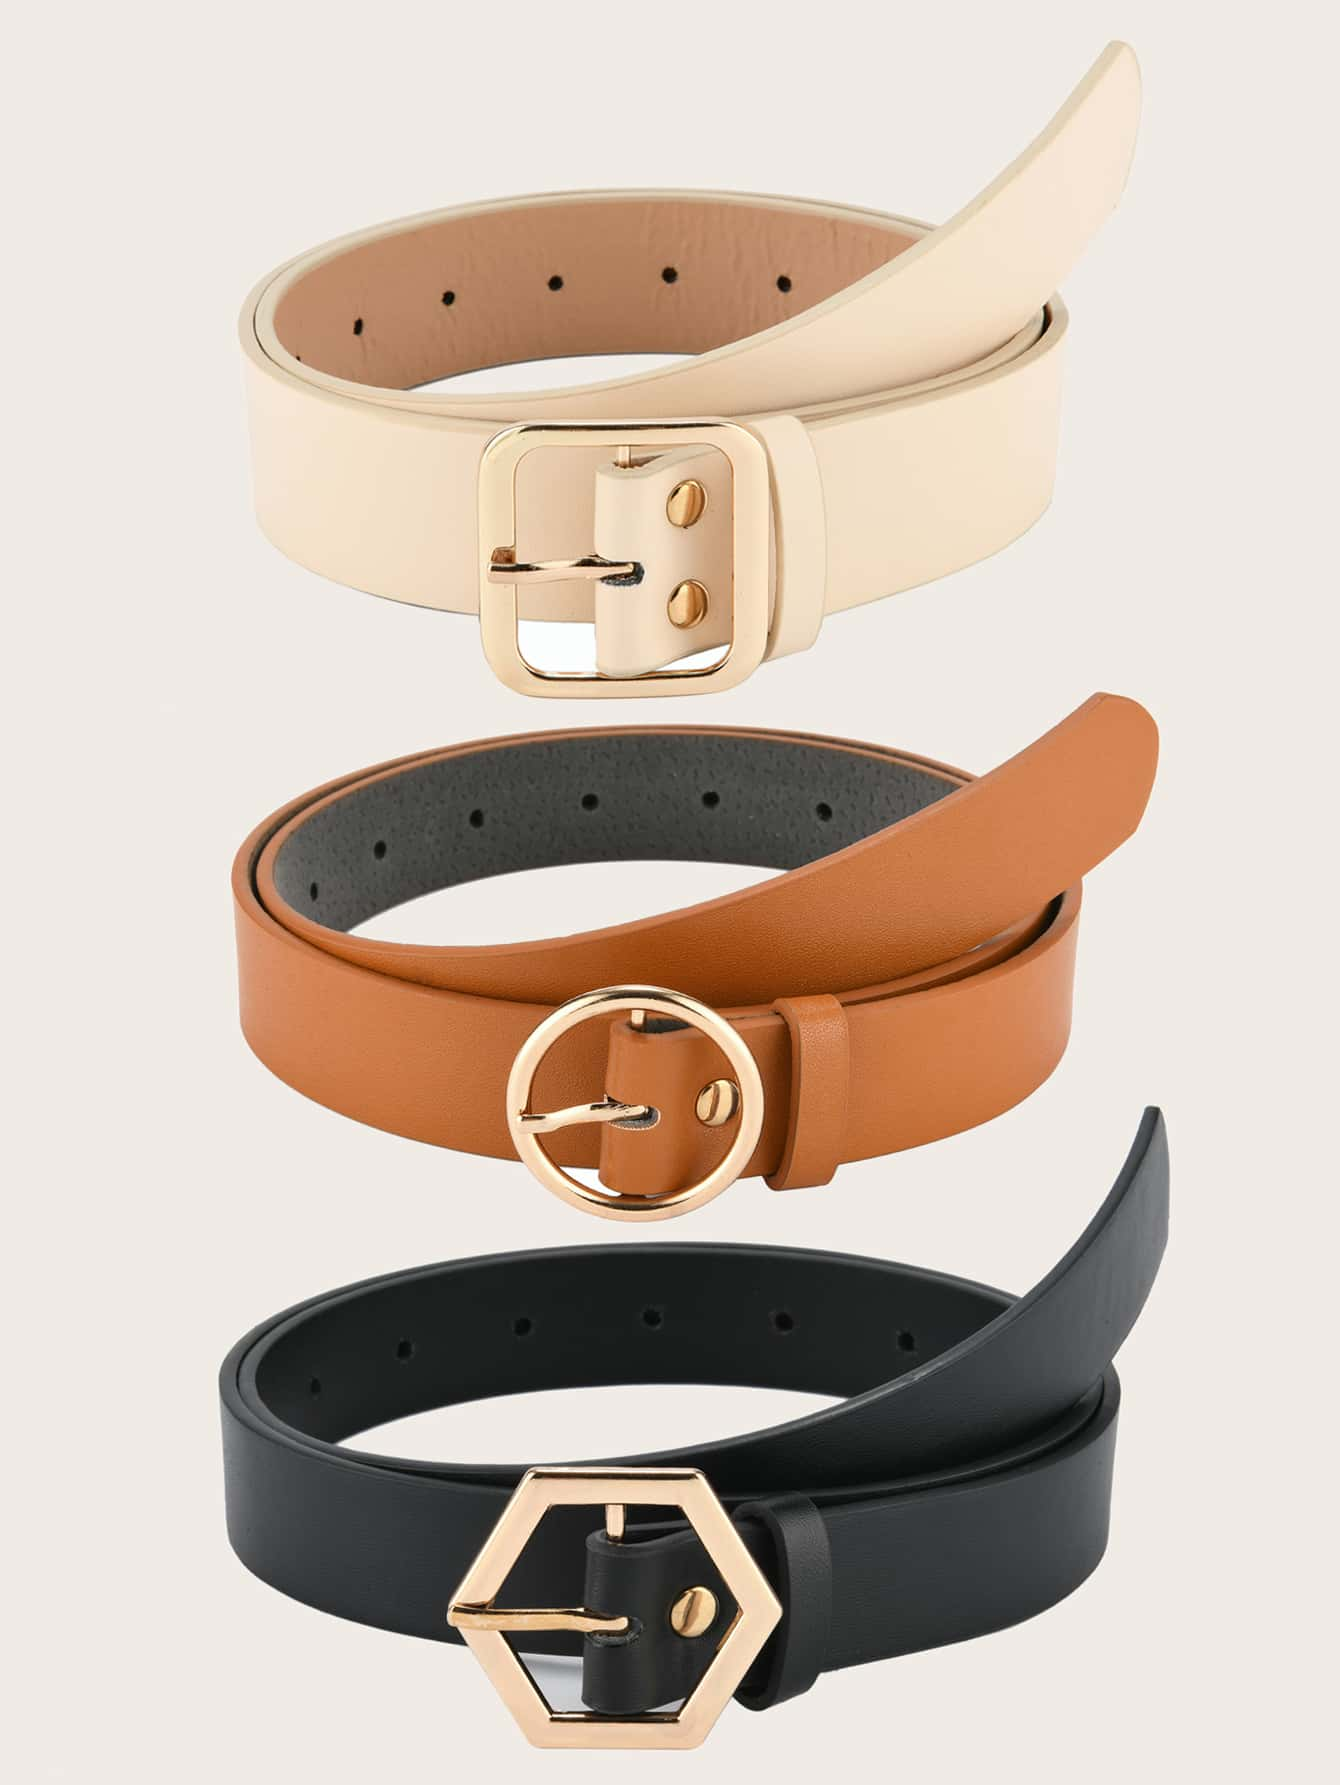 3 pieces Geometric Buckle Decor Solid Belt - FLJ CORPORATIONS